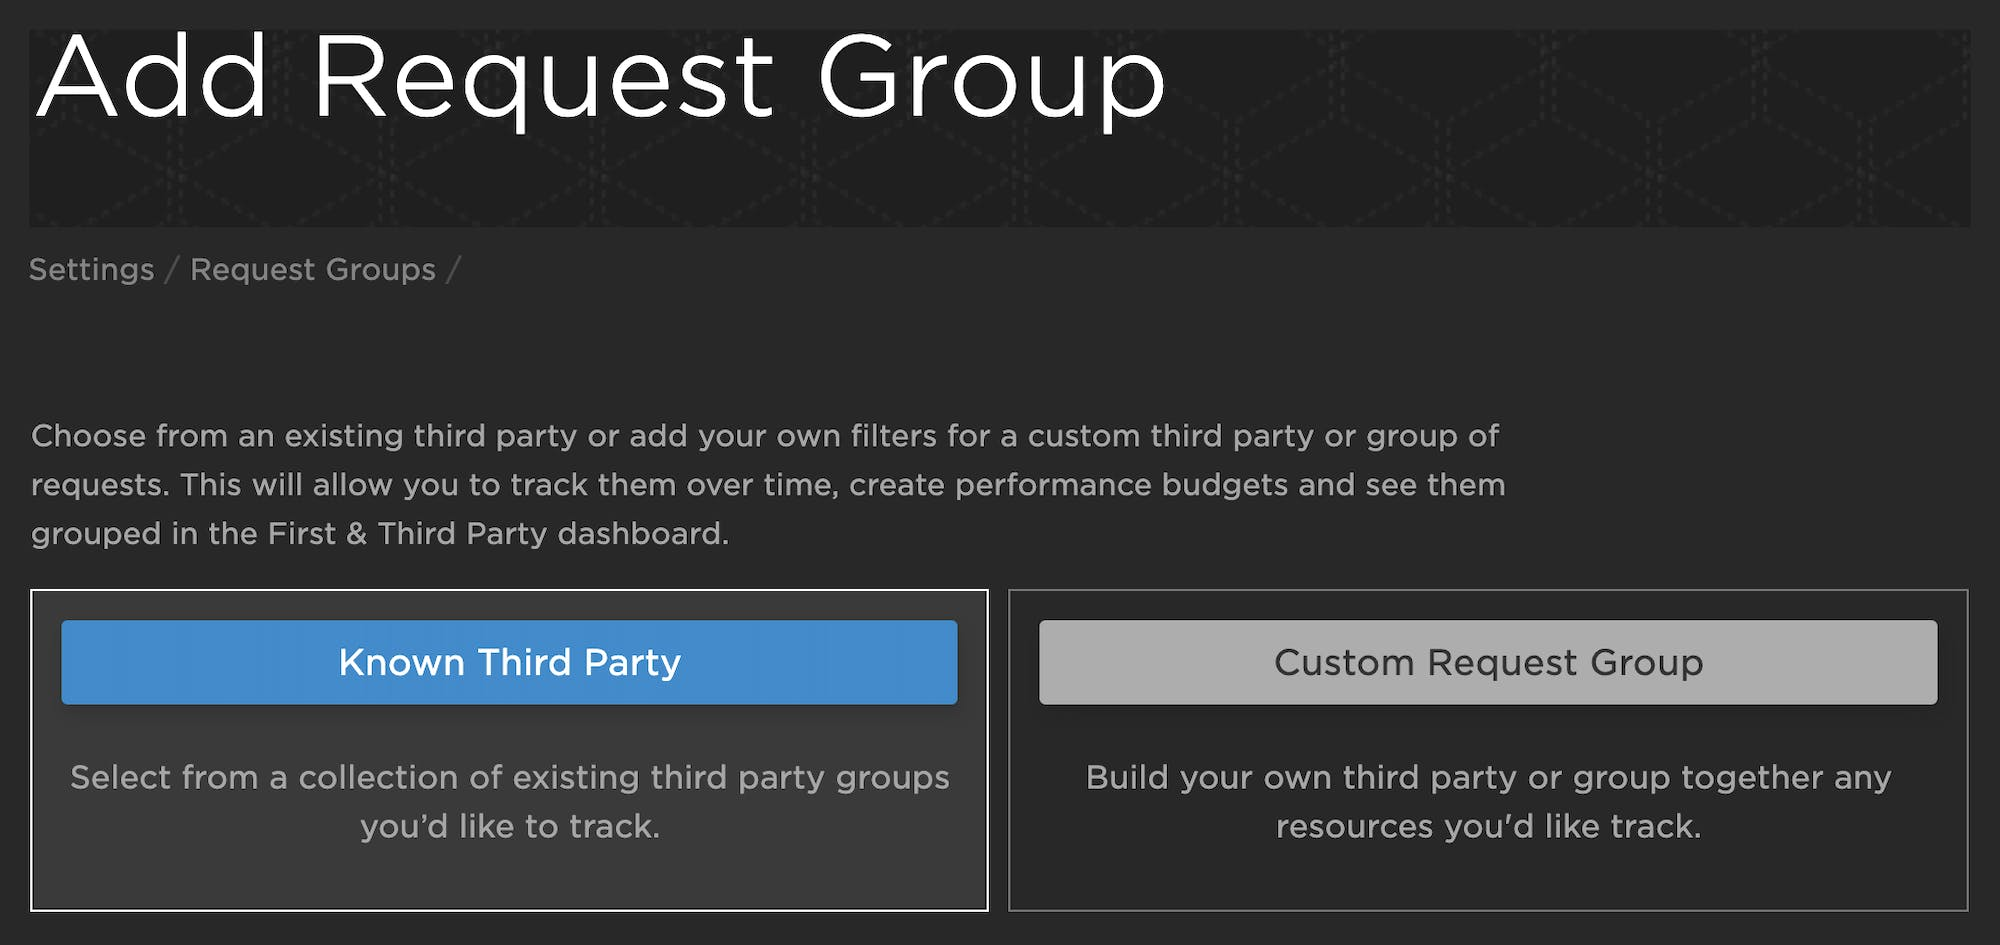 Adding a request group